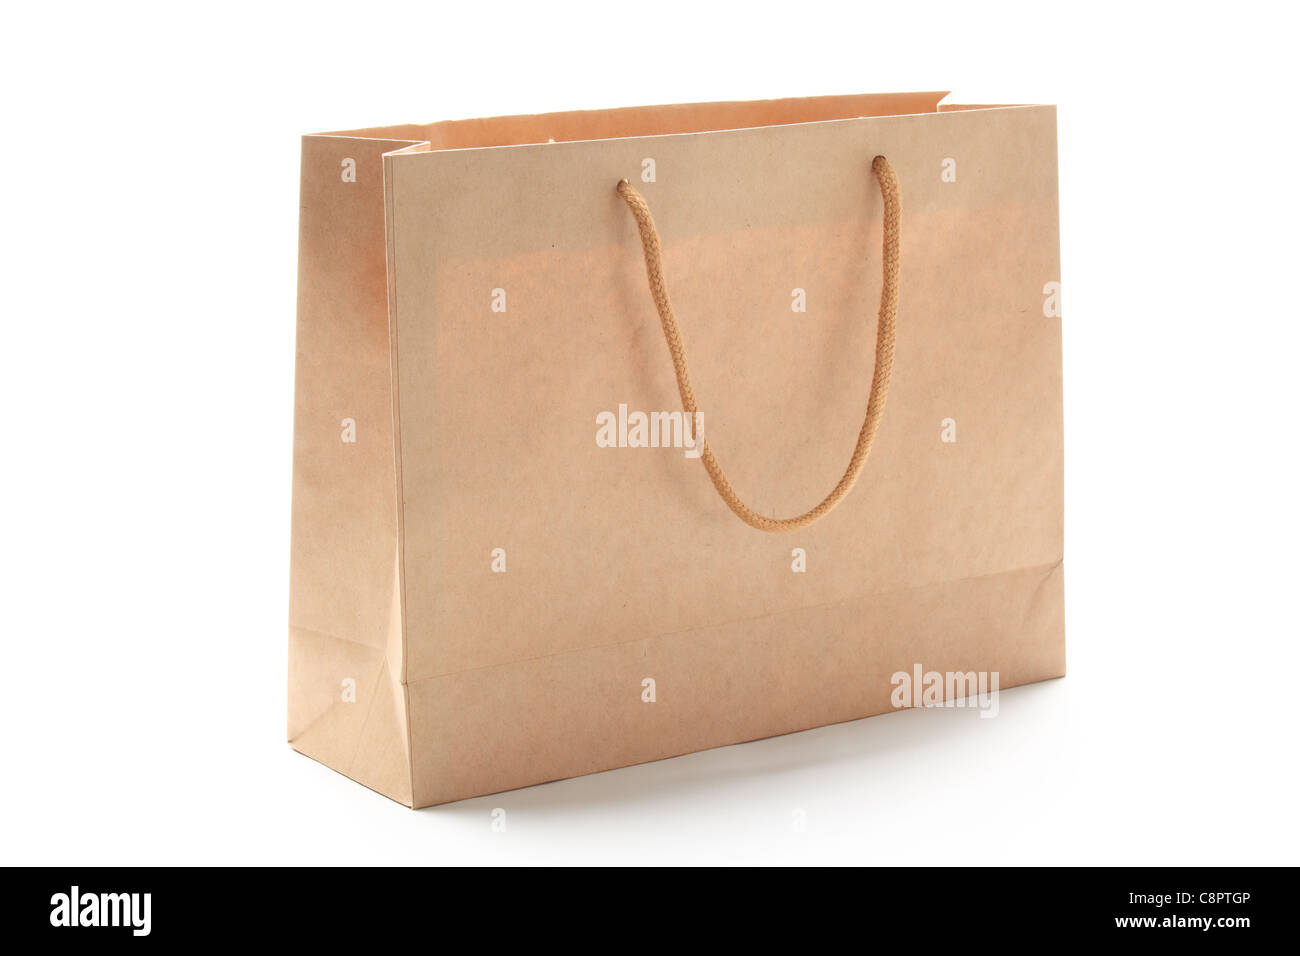 Paper shopping bag isolated on white - Stock Image